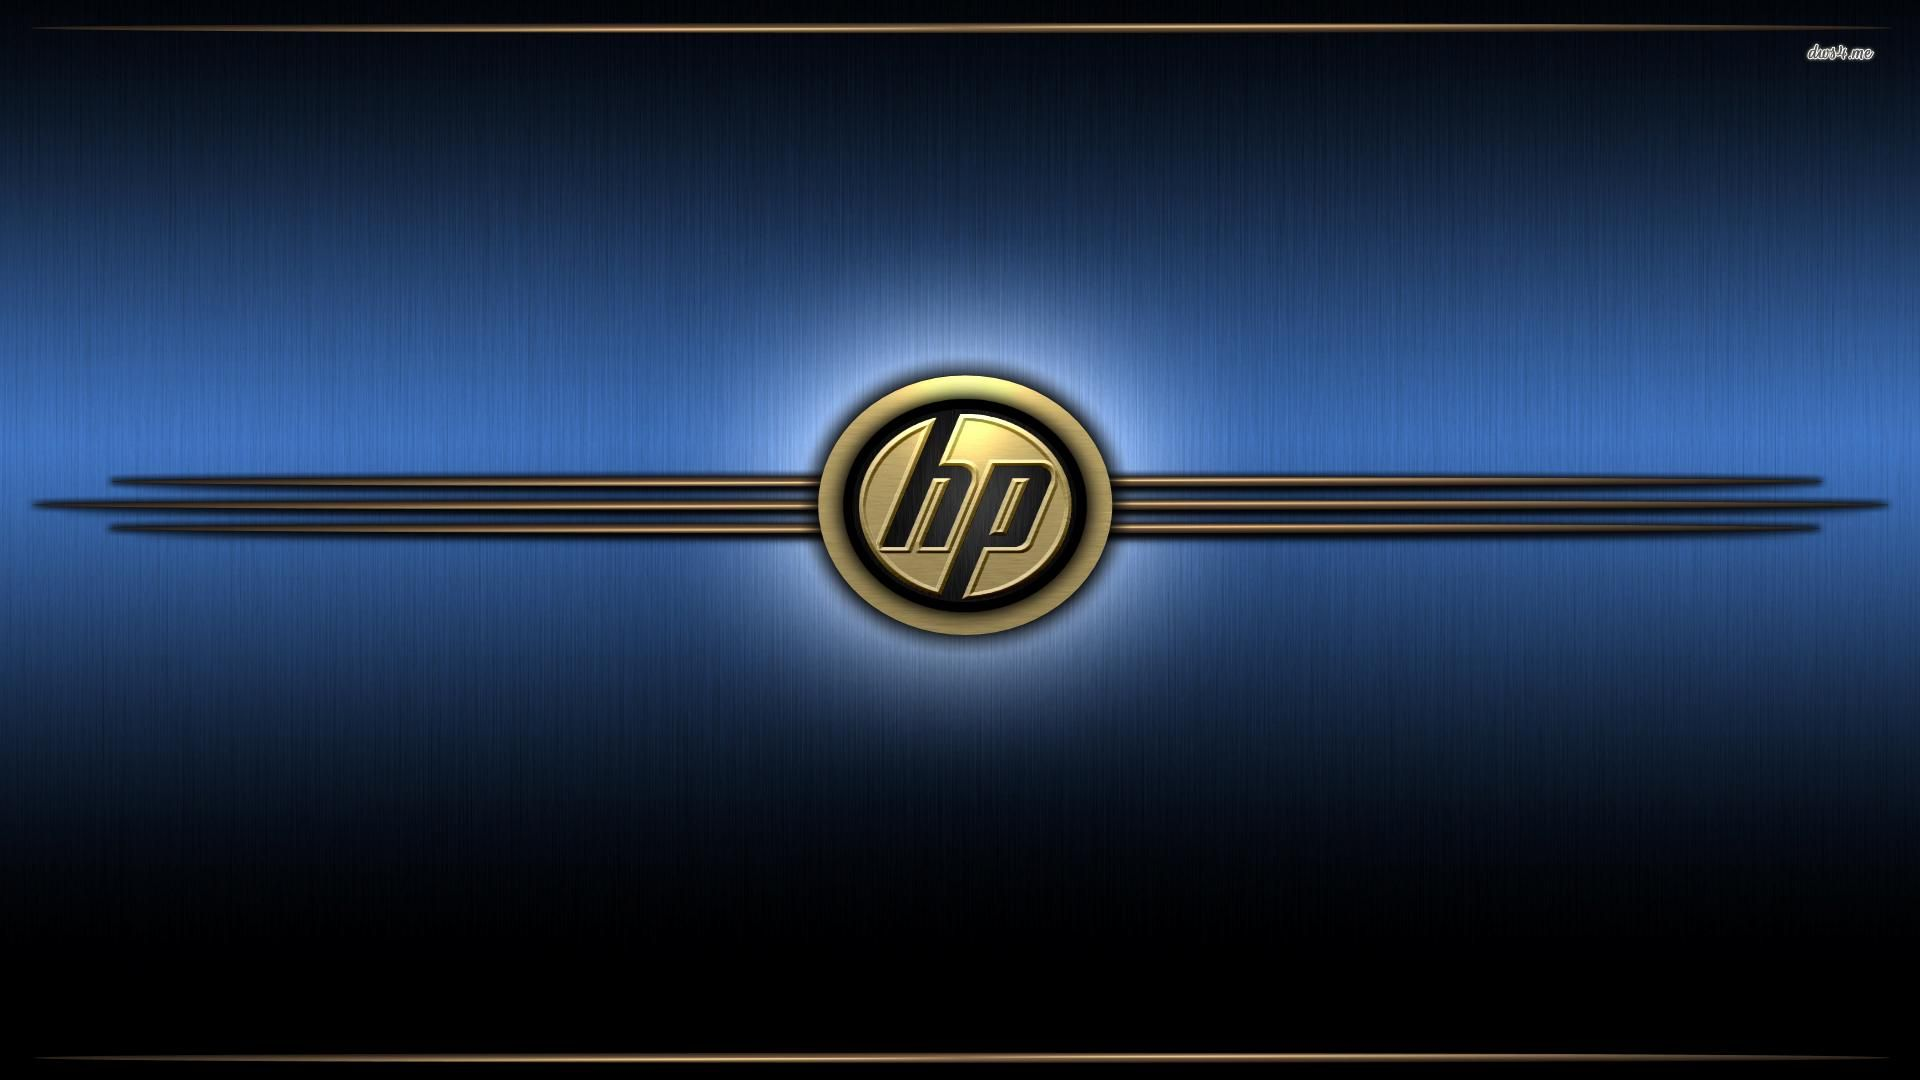 Hp Wallpaper Blue High Resolution With 1920x1080 Px 10968 KB